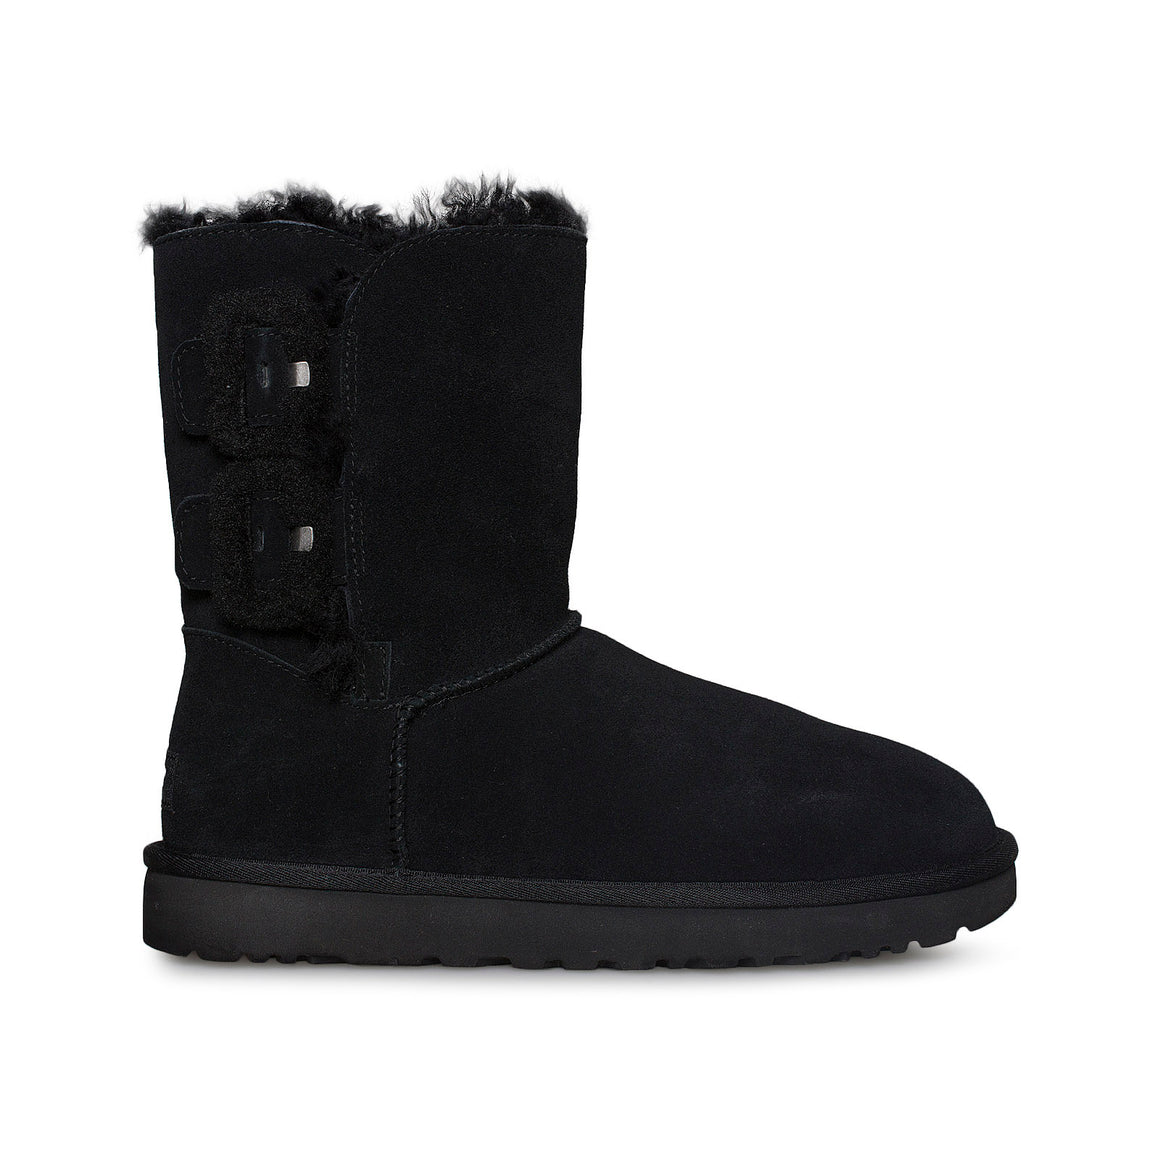 UGG Bailey Fluff Buckle Black Boots - Women's